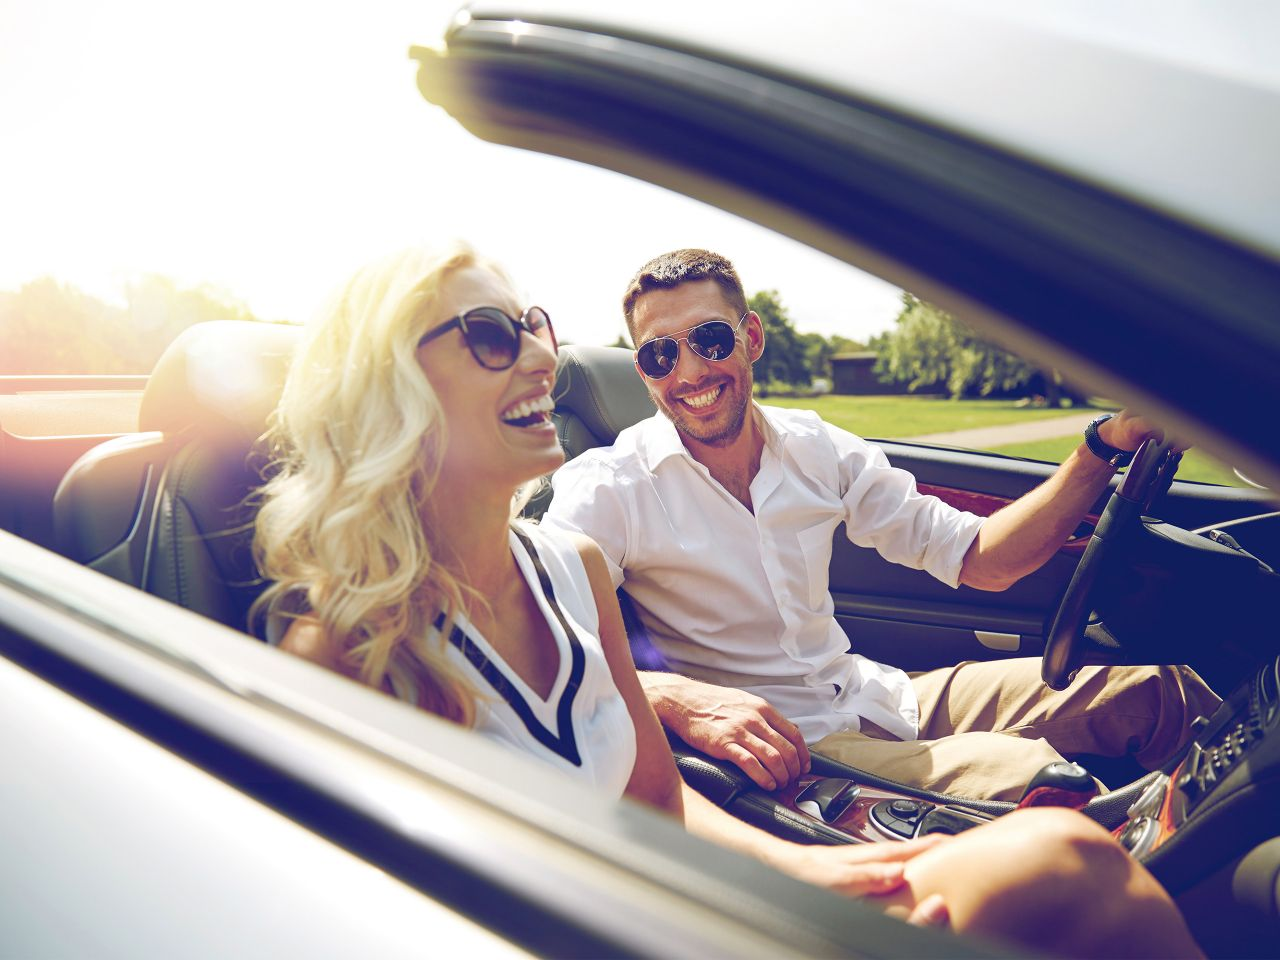 Driving, laughing couple